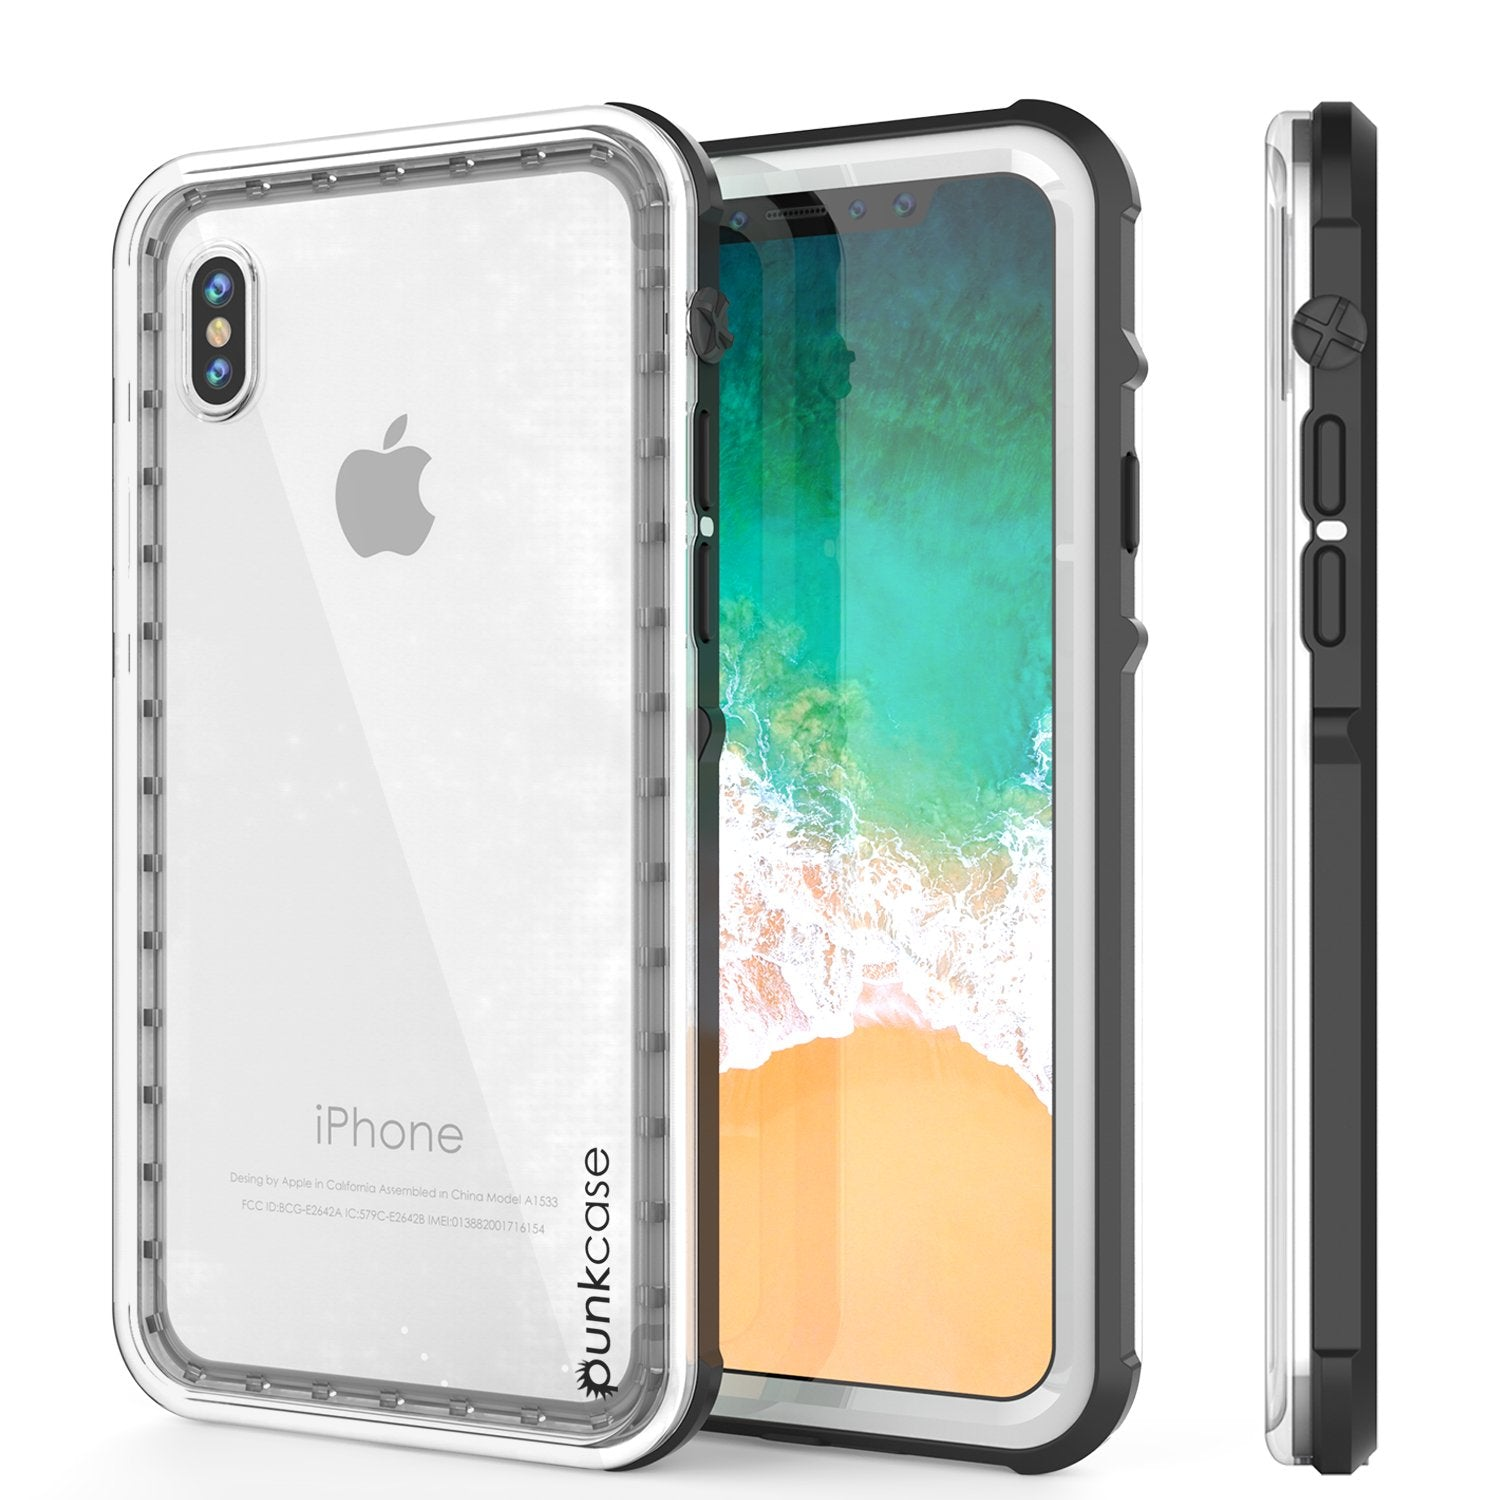 iPhone XS Max Case, PUNKCase [CRYSTAL SERIES] Protective IP68 Certified, Ultra Slim Fit [White]